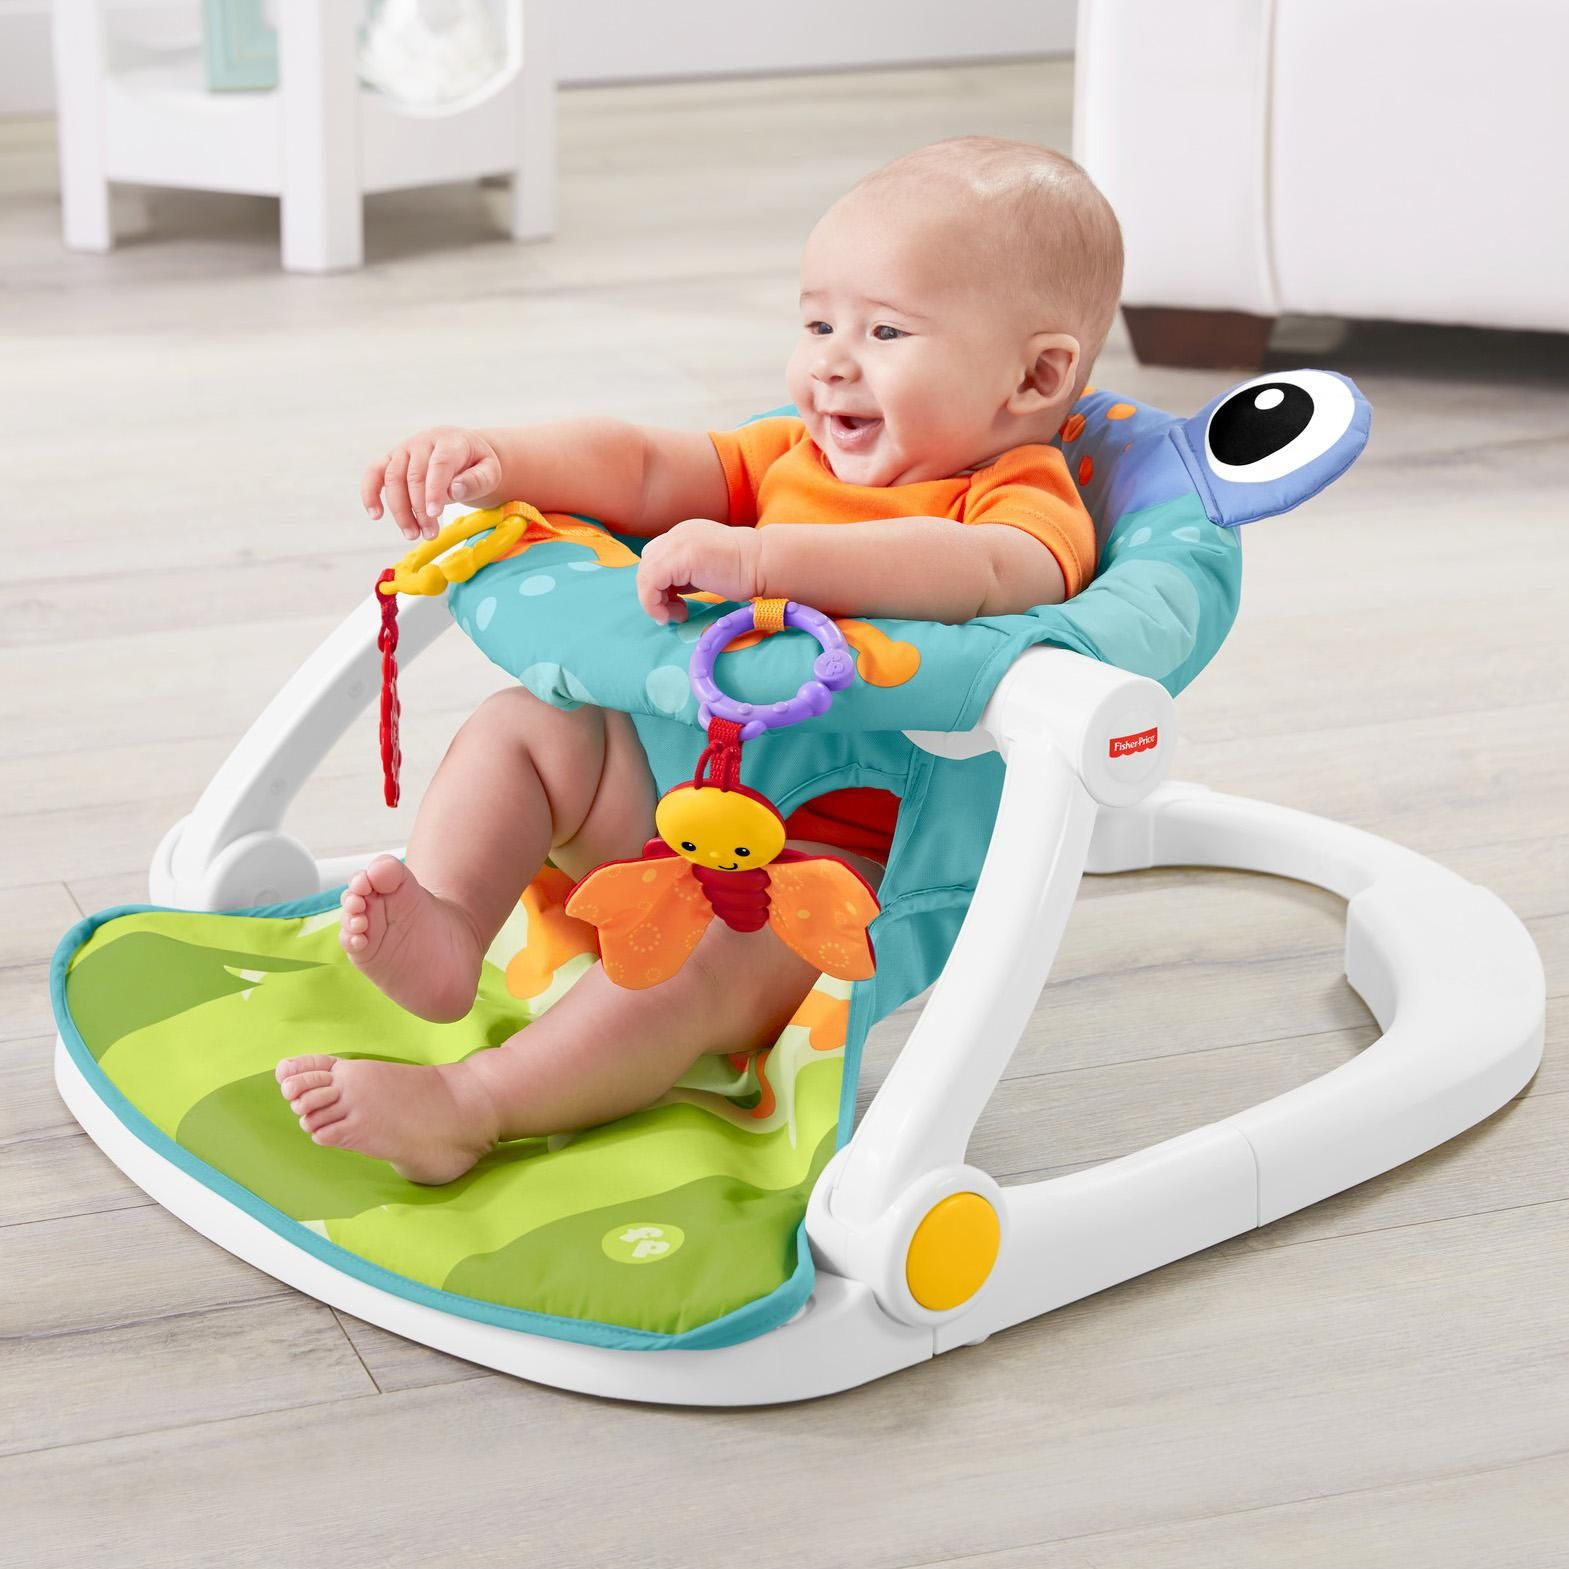 Smartest Baby Toys How To Hedge Your Bets And Purchase A Winner